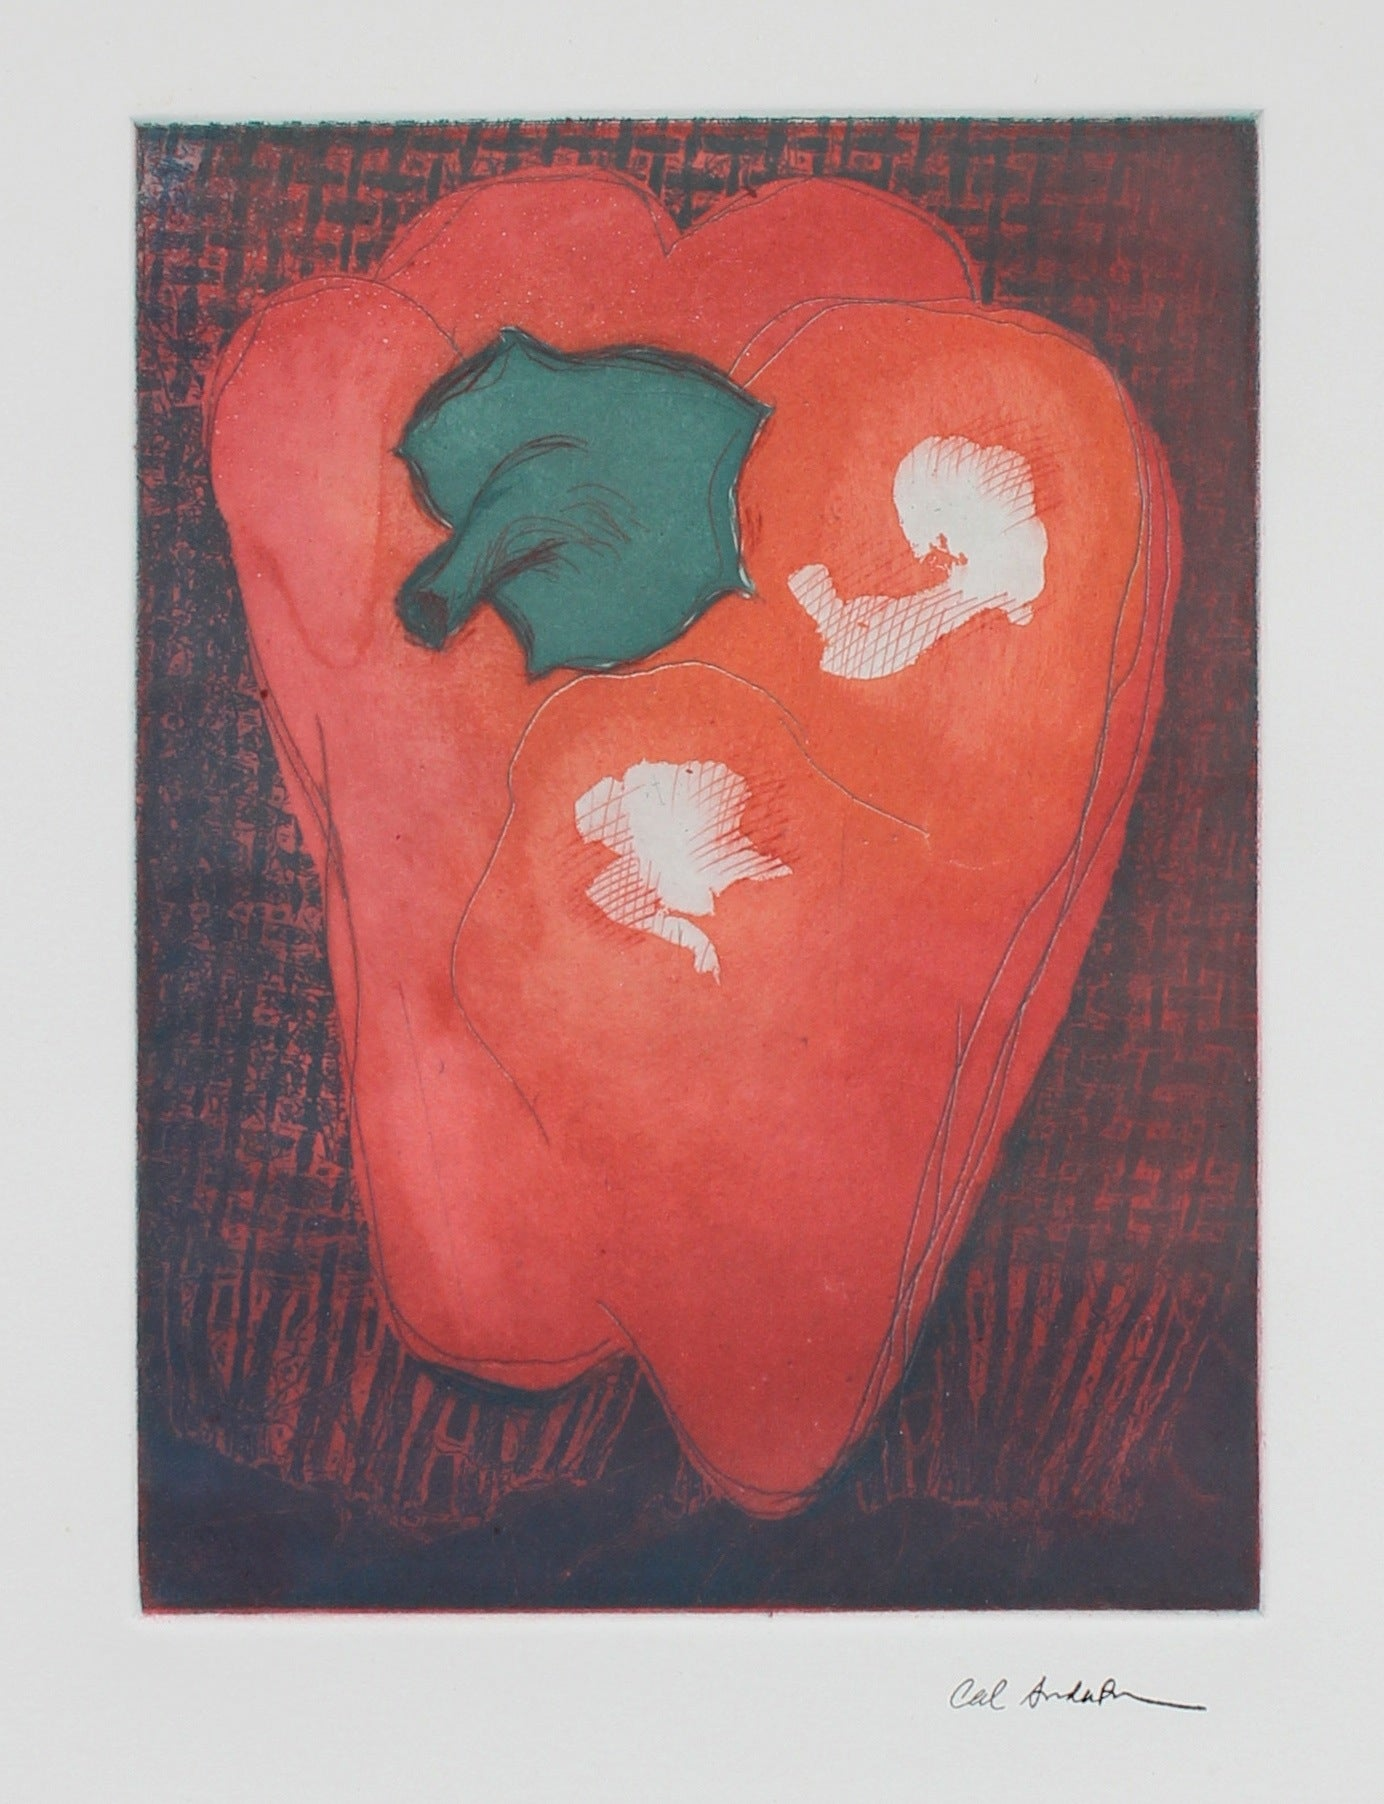 Red Pepper Print <br>1990-2000s Etching <br><br>#99672